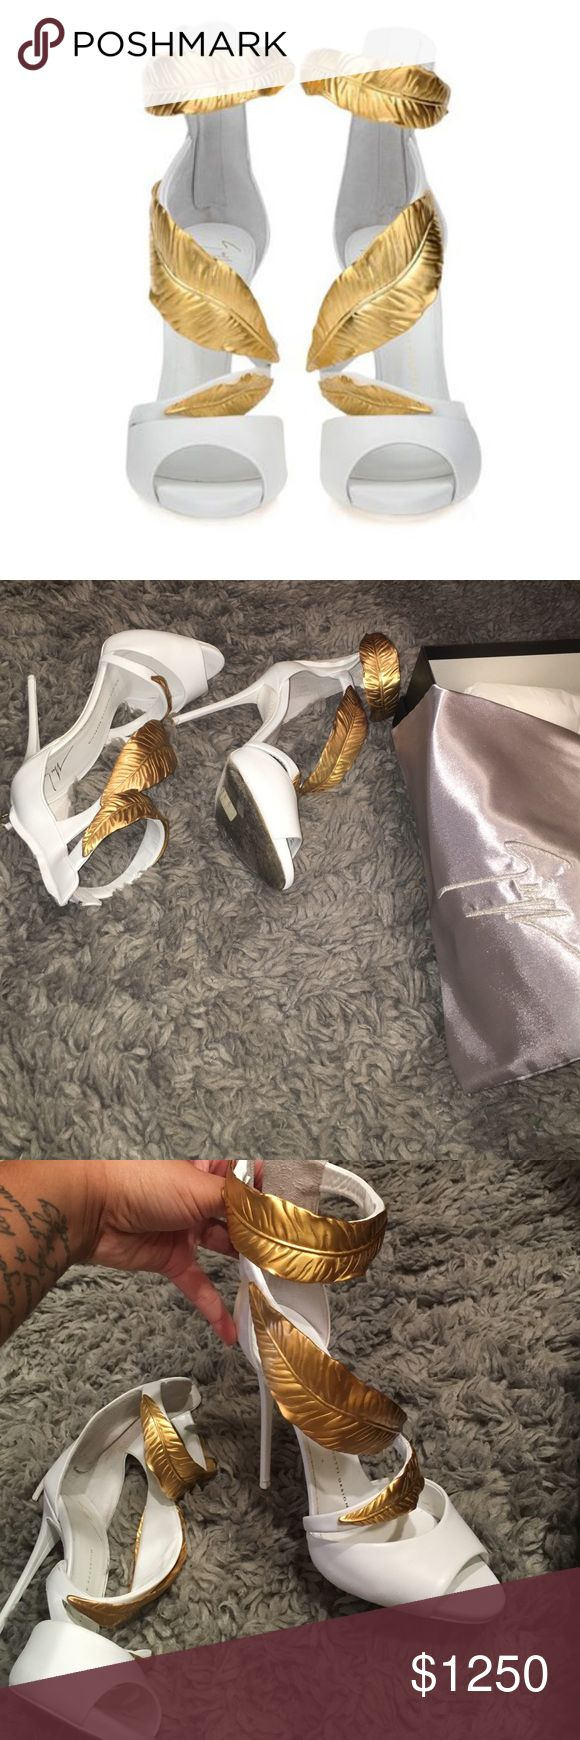 Giuseppe heels Leafy white heels willing to place more pics great condition worn 3 times purchased in 2014 no scuffs  just wear of the bottom. Original box original duster cheaper on Ⓜ️ ONLY !! Giuseppe Zanotti Shoes Heels